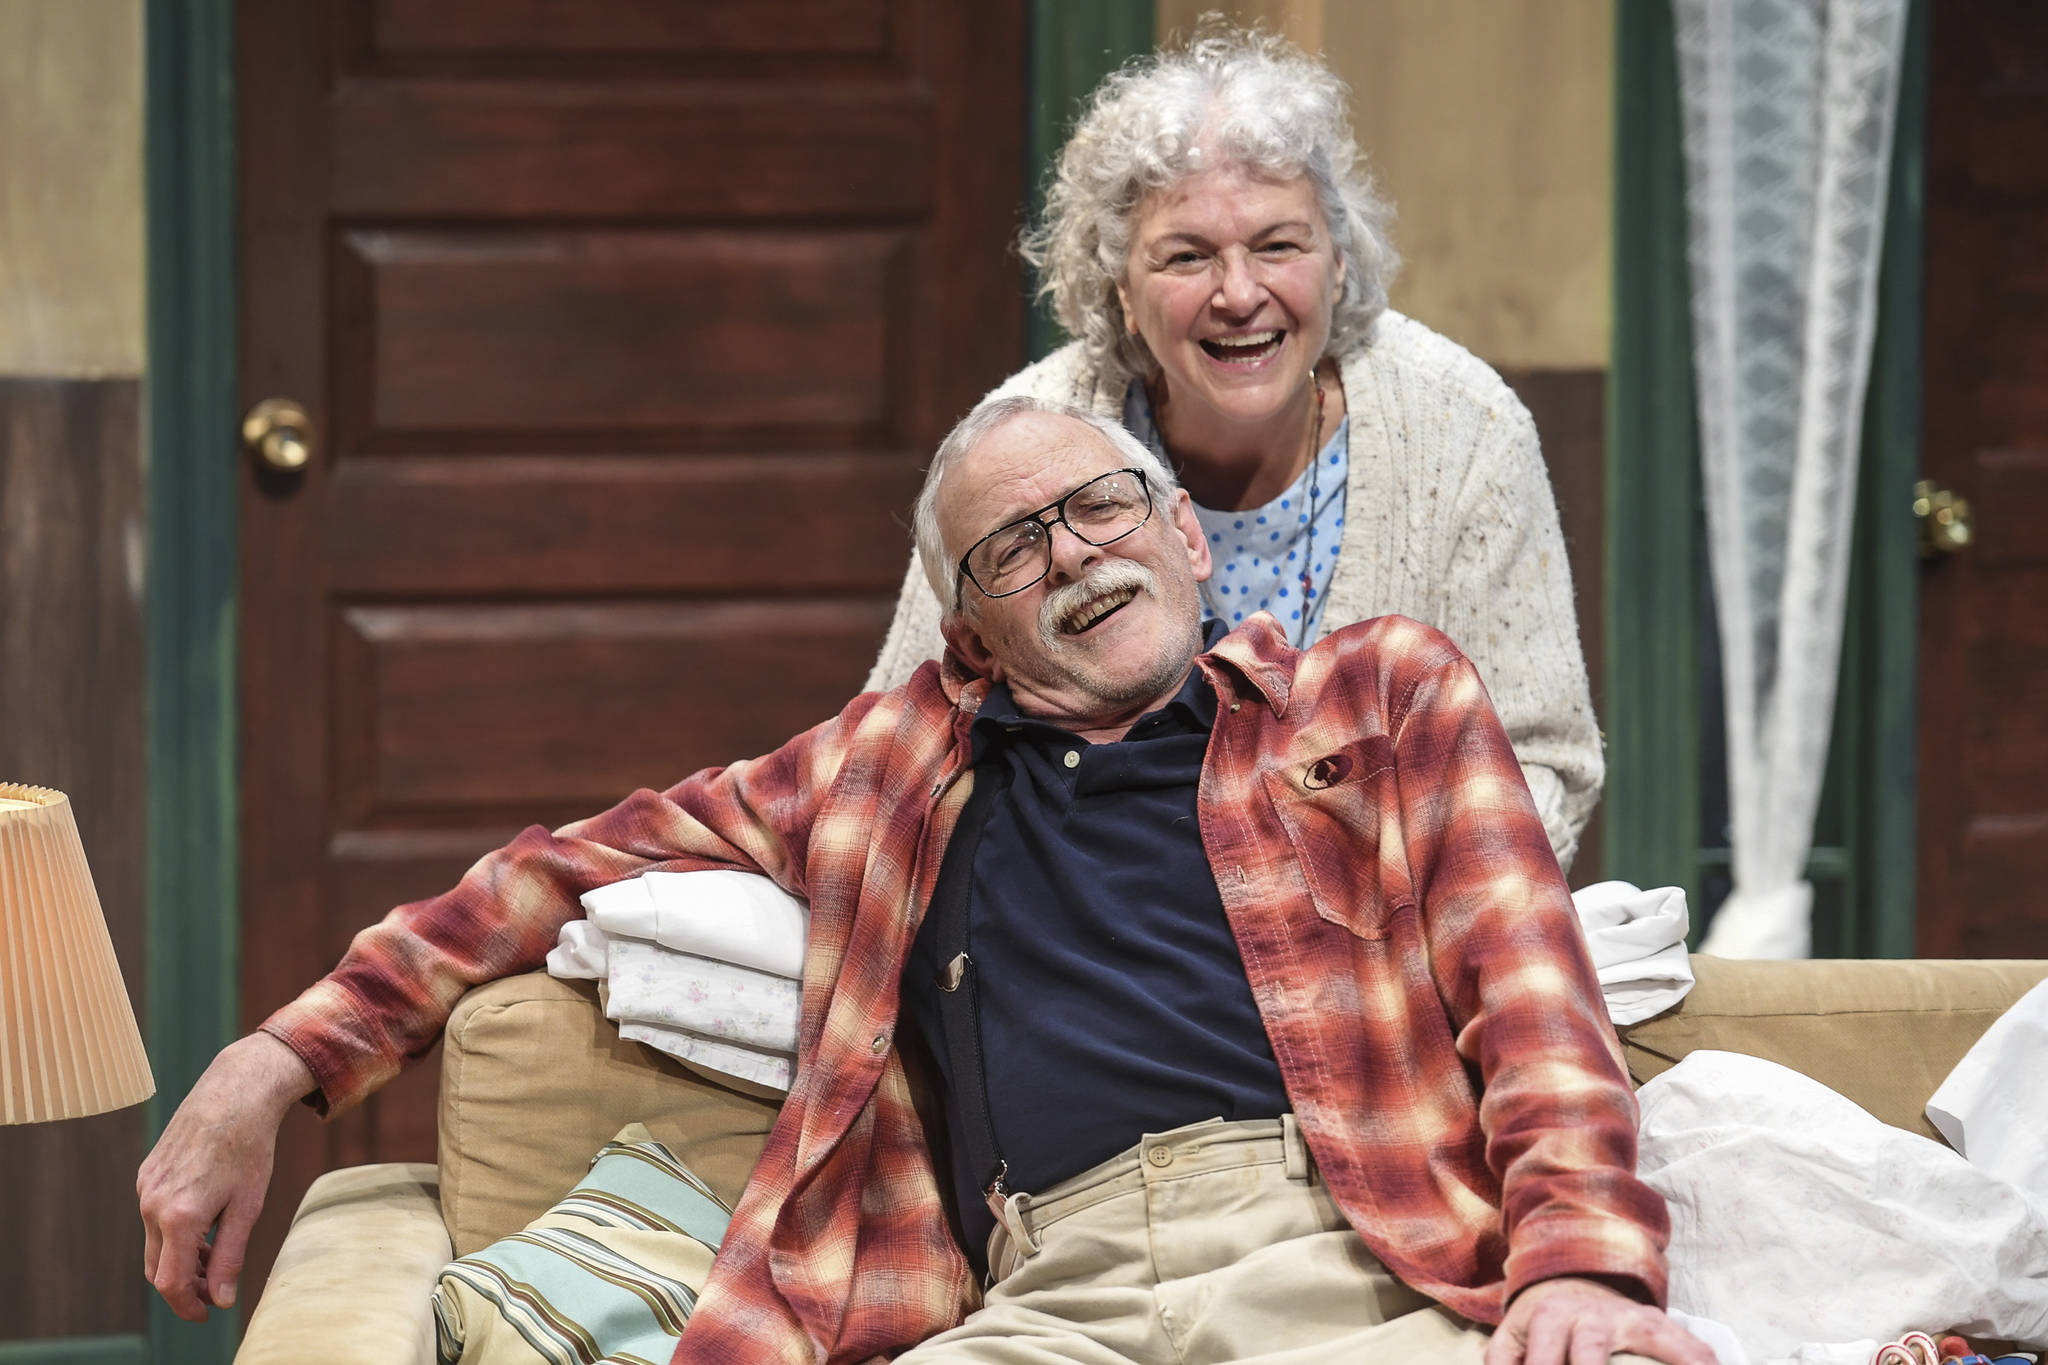 """Clifford, played by Charlie Cardwell, and Minnie, played by Angelina Fiordellisi, rehearse in Perseverance Theatre's production of """"With"""" by playwright Carter Lewis on Tuesday, Nov. 19, 2019. With opens Friday Nov. 22 and runs through Dec. 15. (Michael Penn 